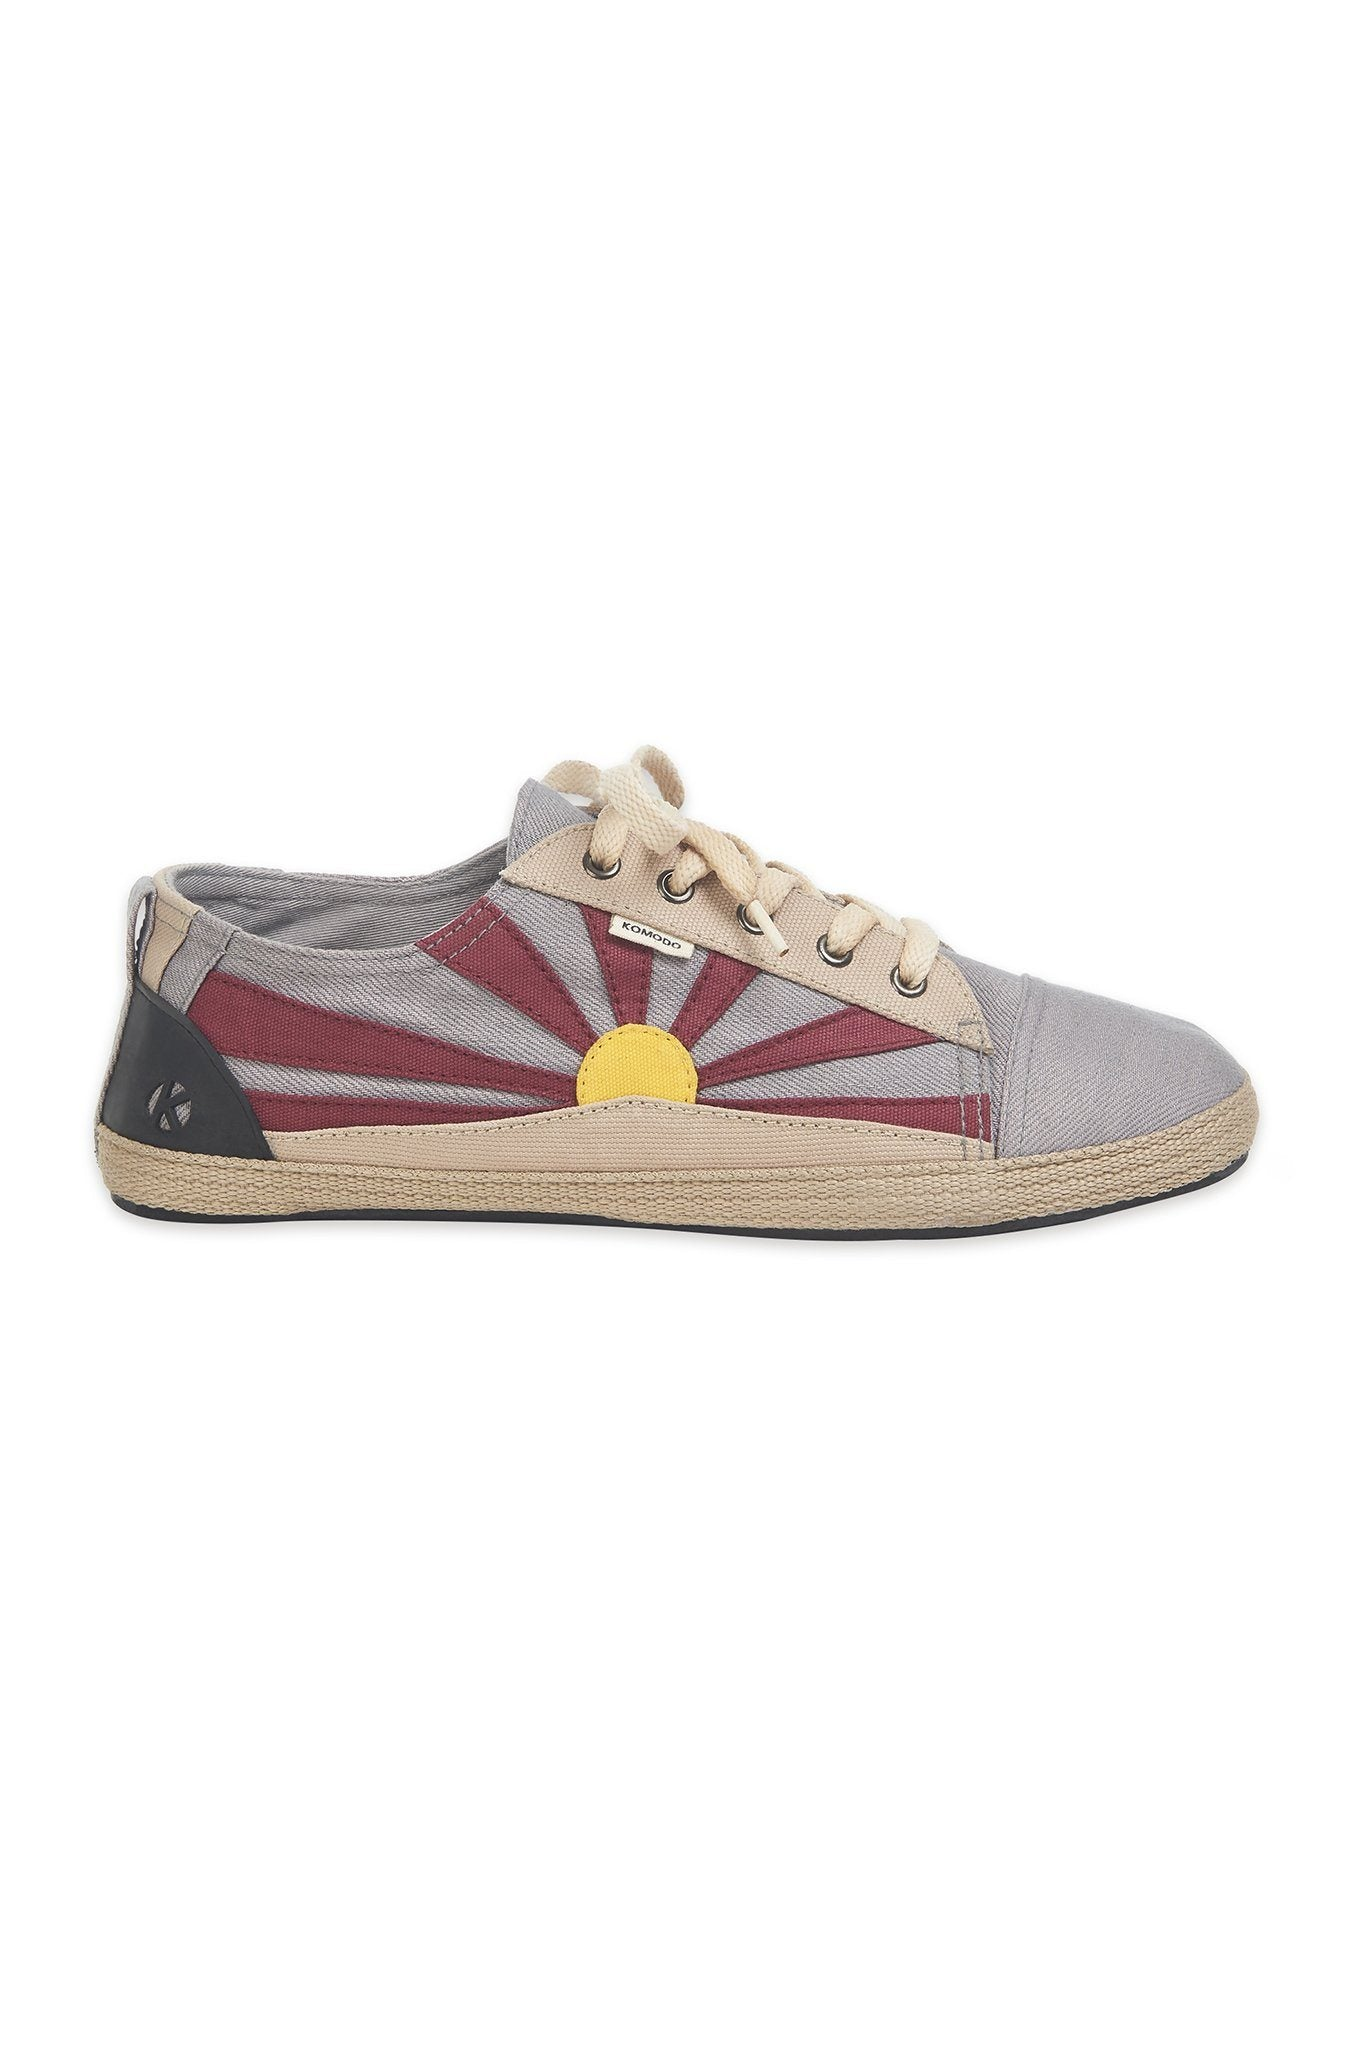 TIBET Grey Womens Shoes - Komodo Fashion